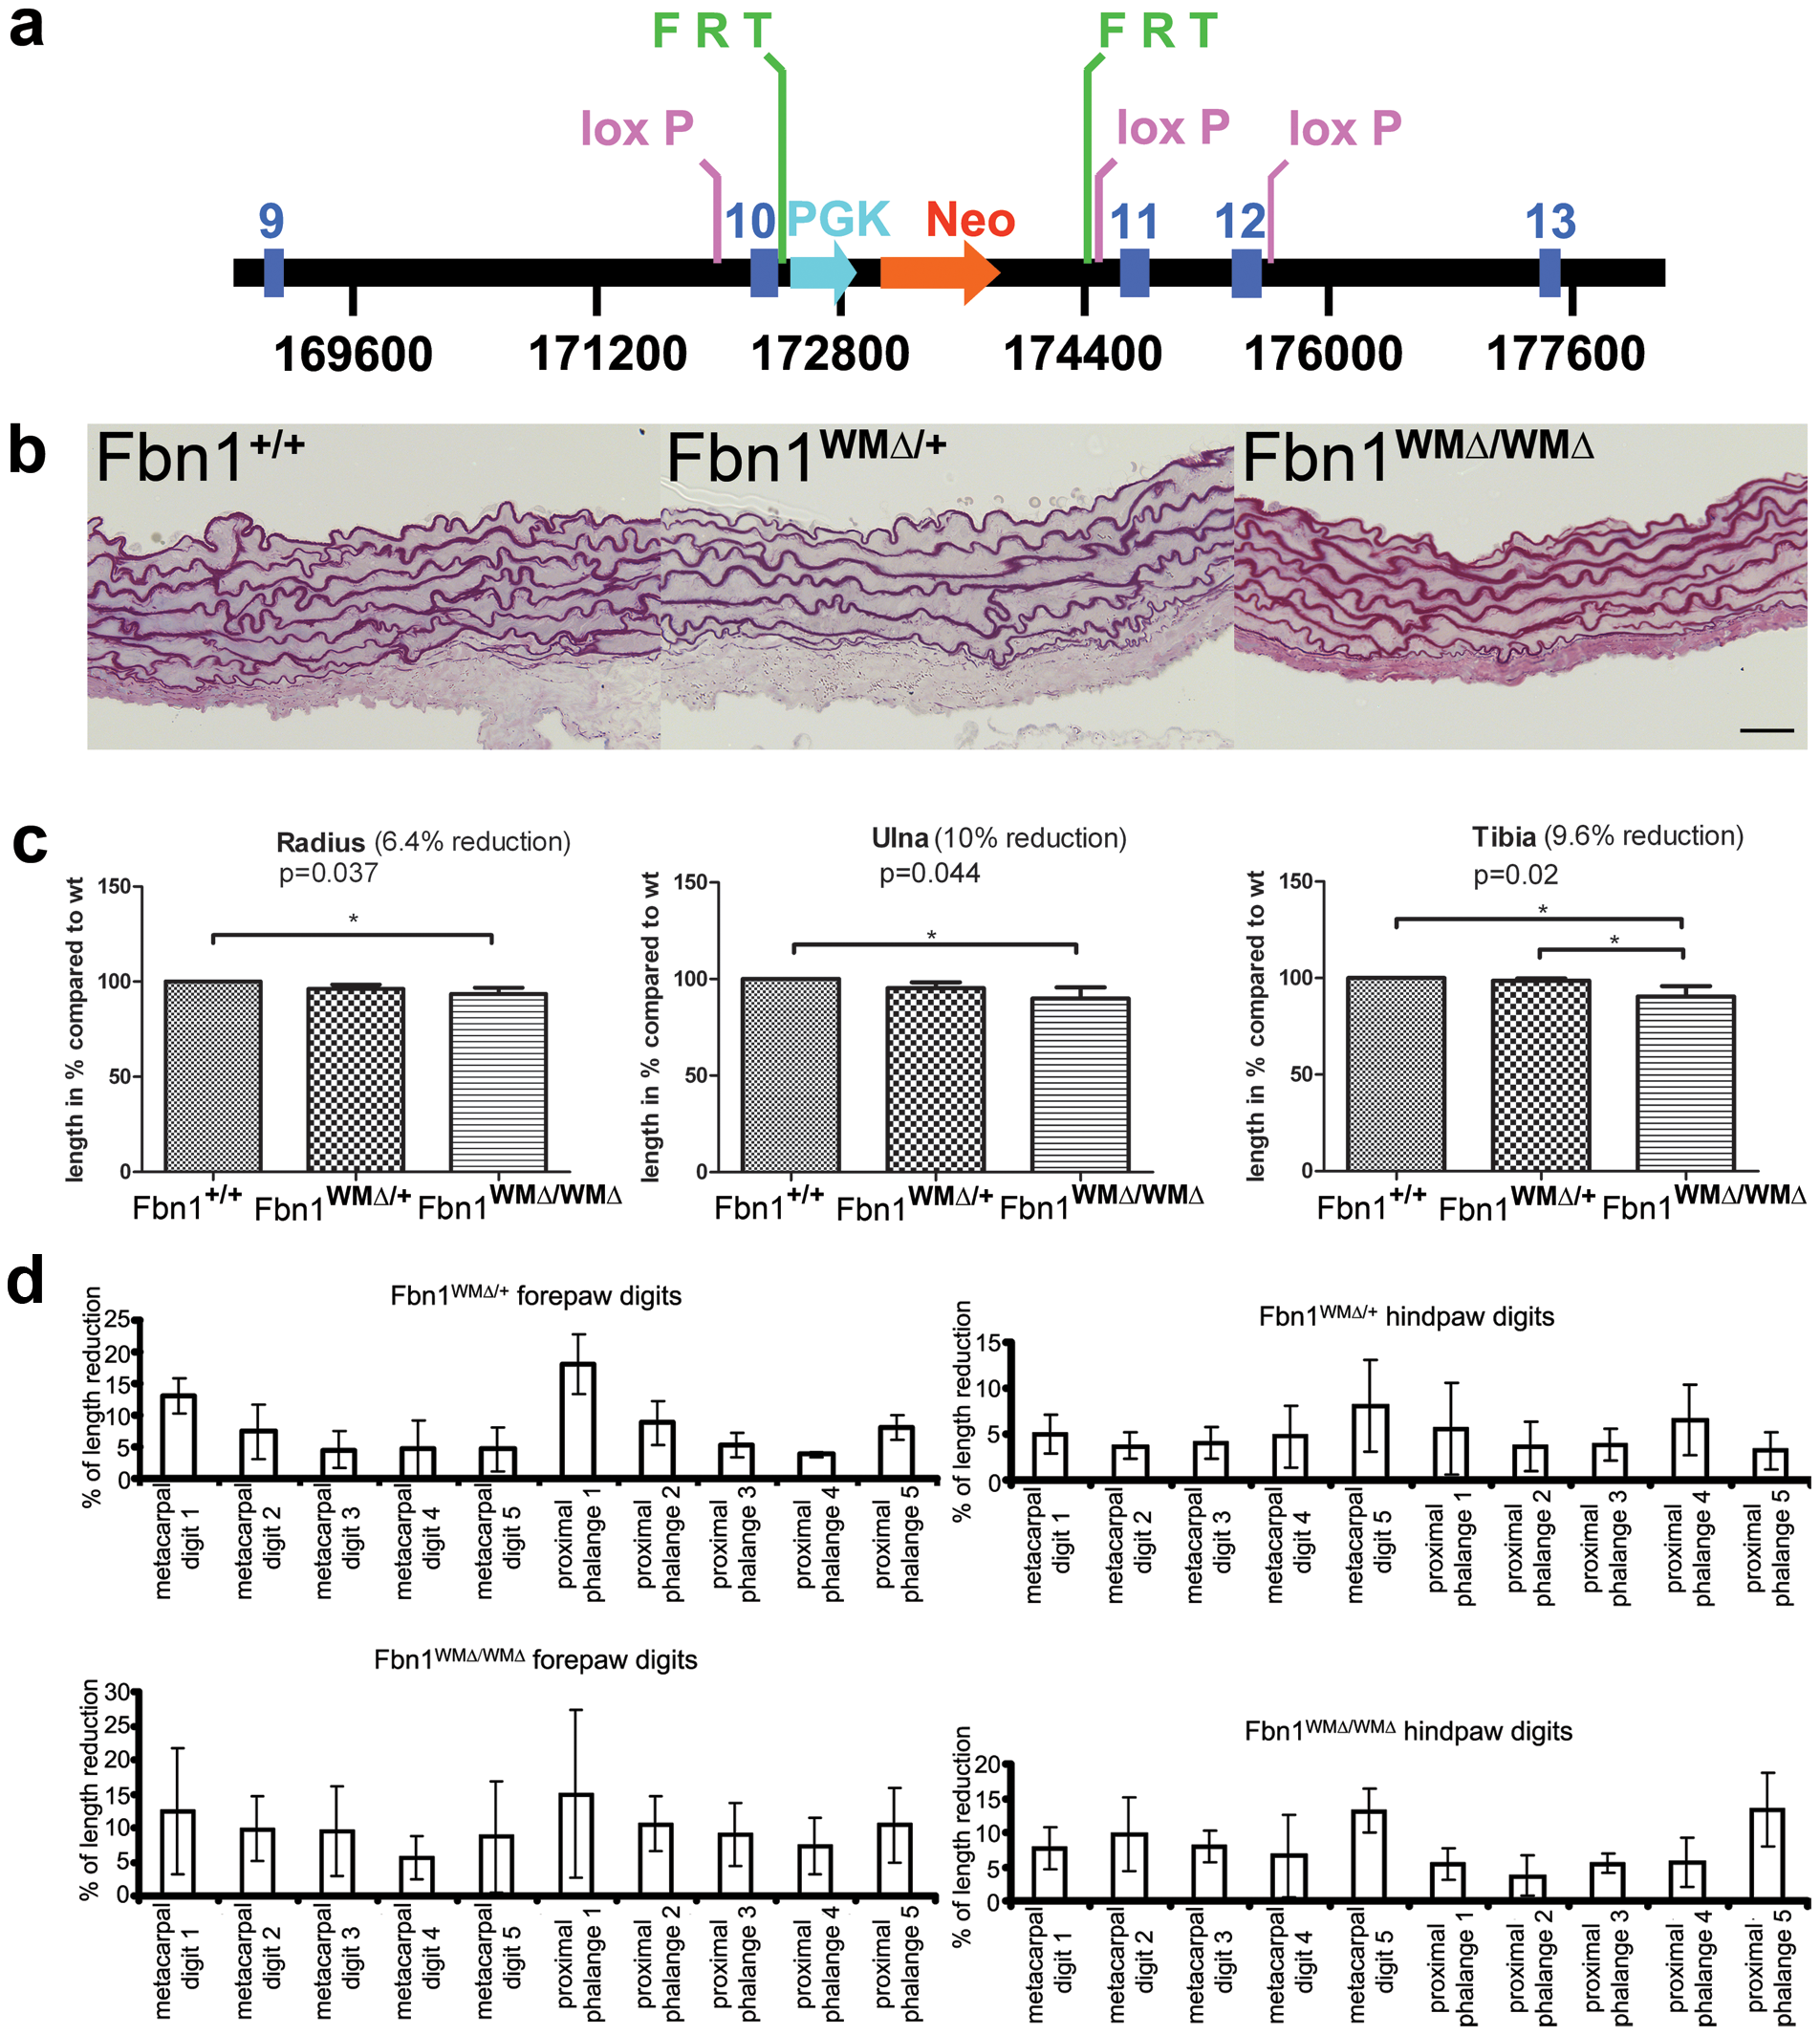 Replication of the WMS mutation in mice.